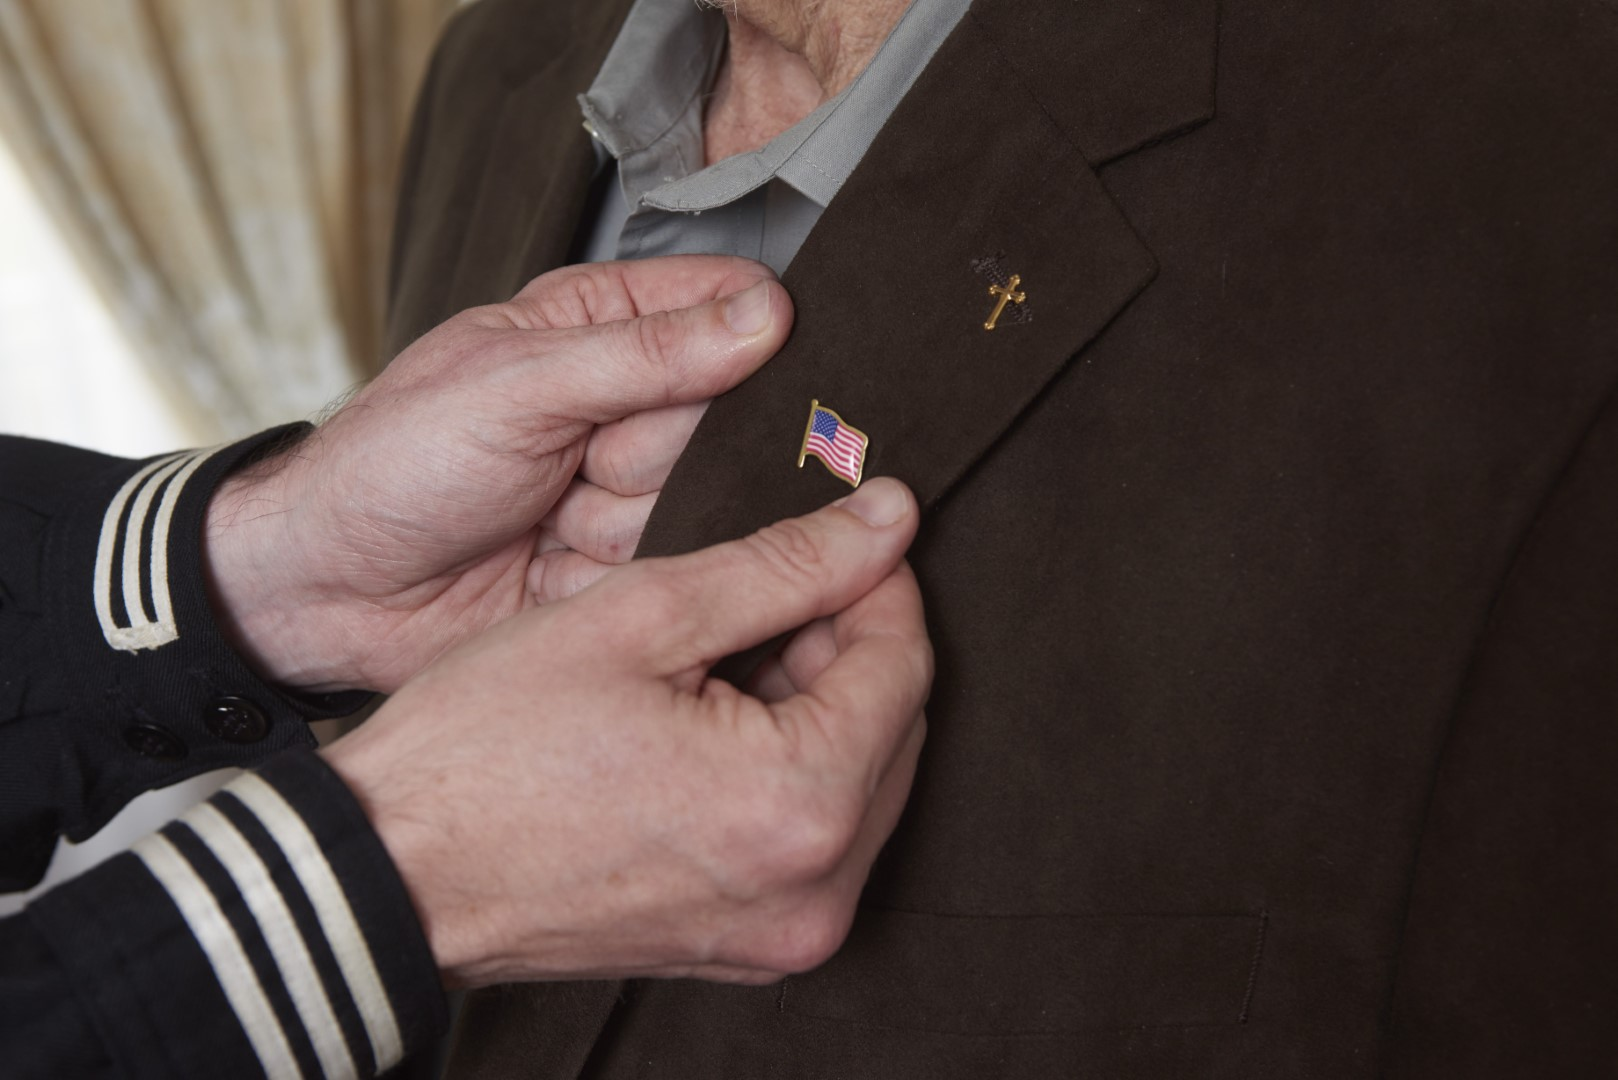 What to Look for When Choosing a Veterans' Hospice